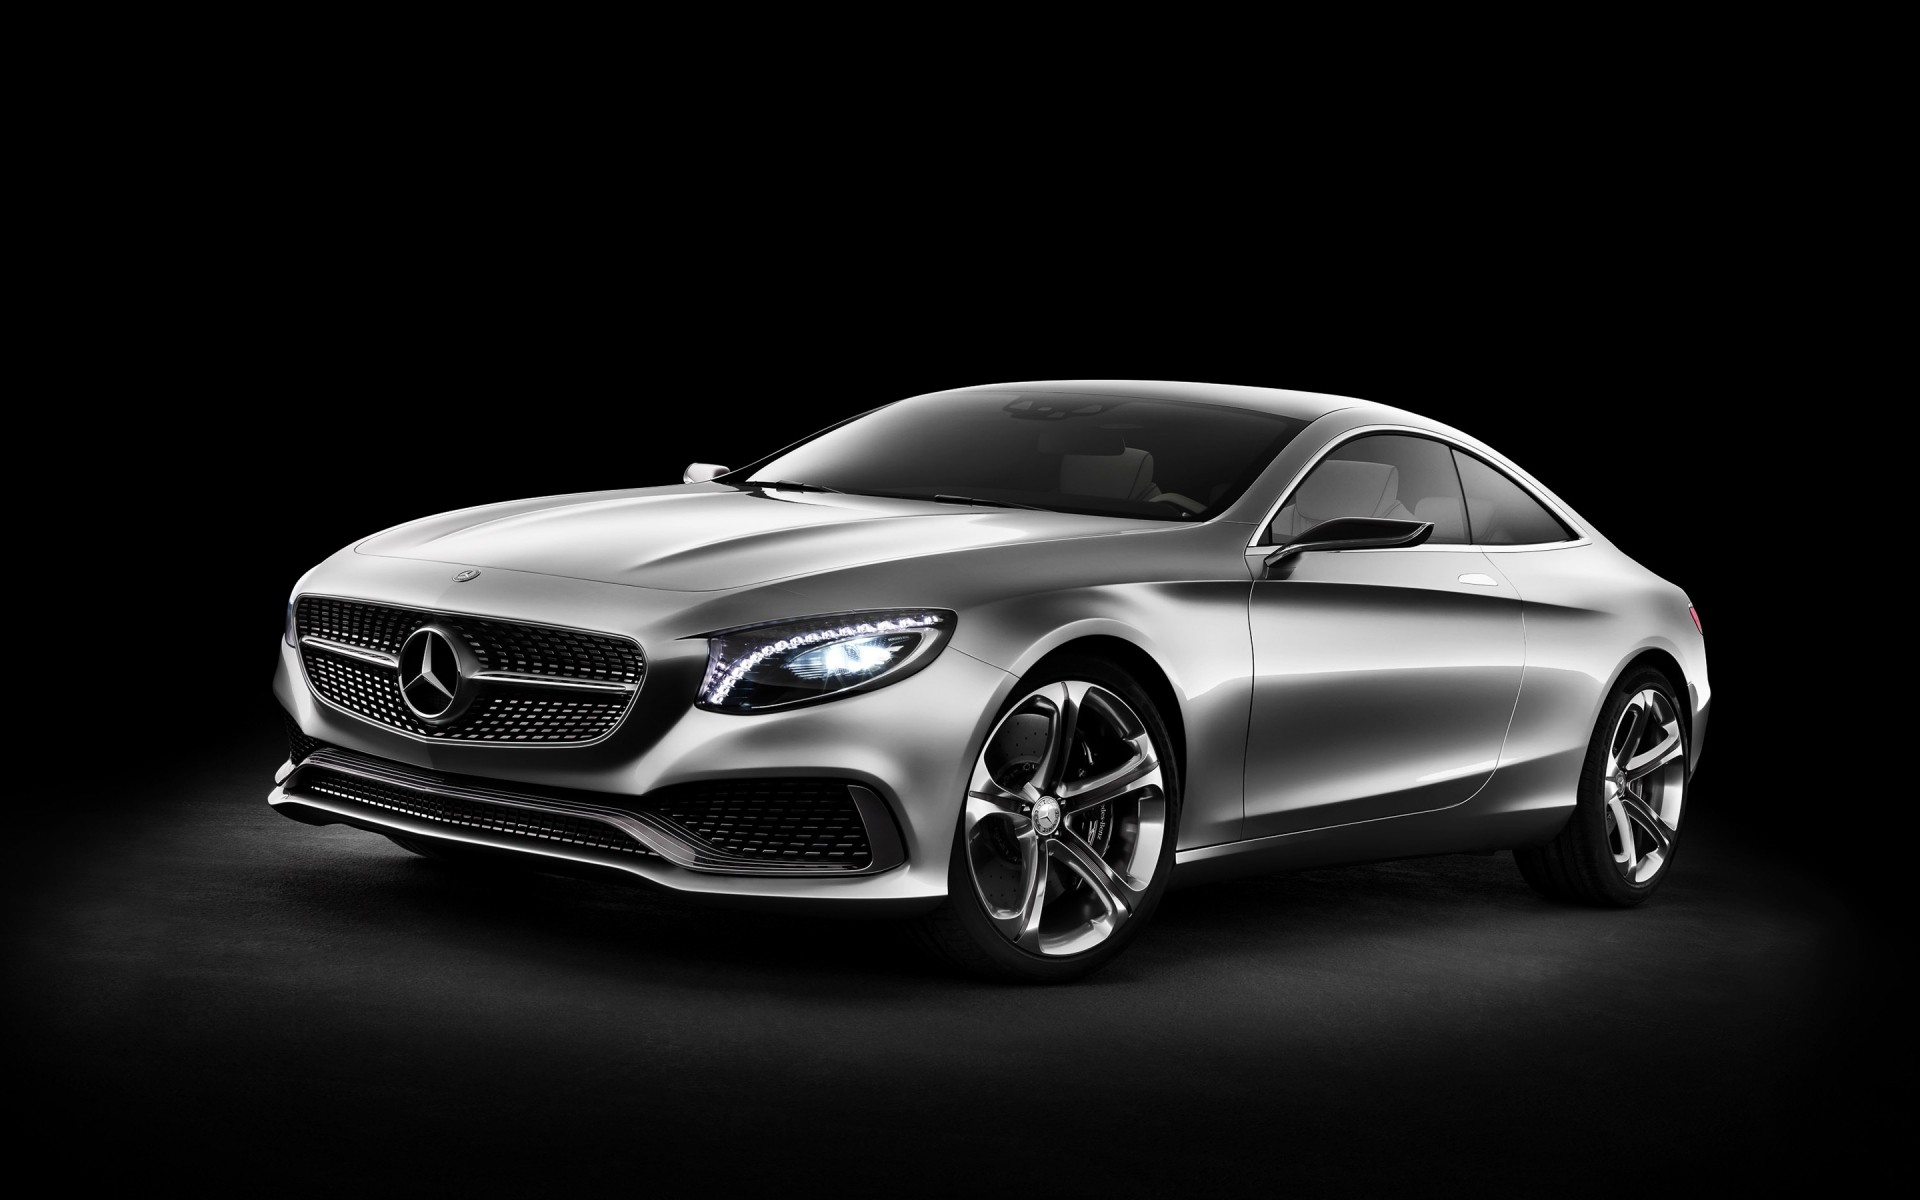 concept cars car vehicle automotive wheel coupe blacktop chrome fast sedan classic luxury noon hood mercedes benz s class mercedes benz concept